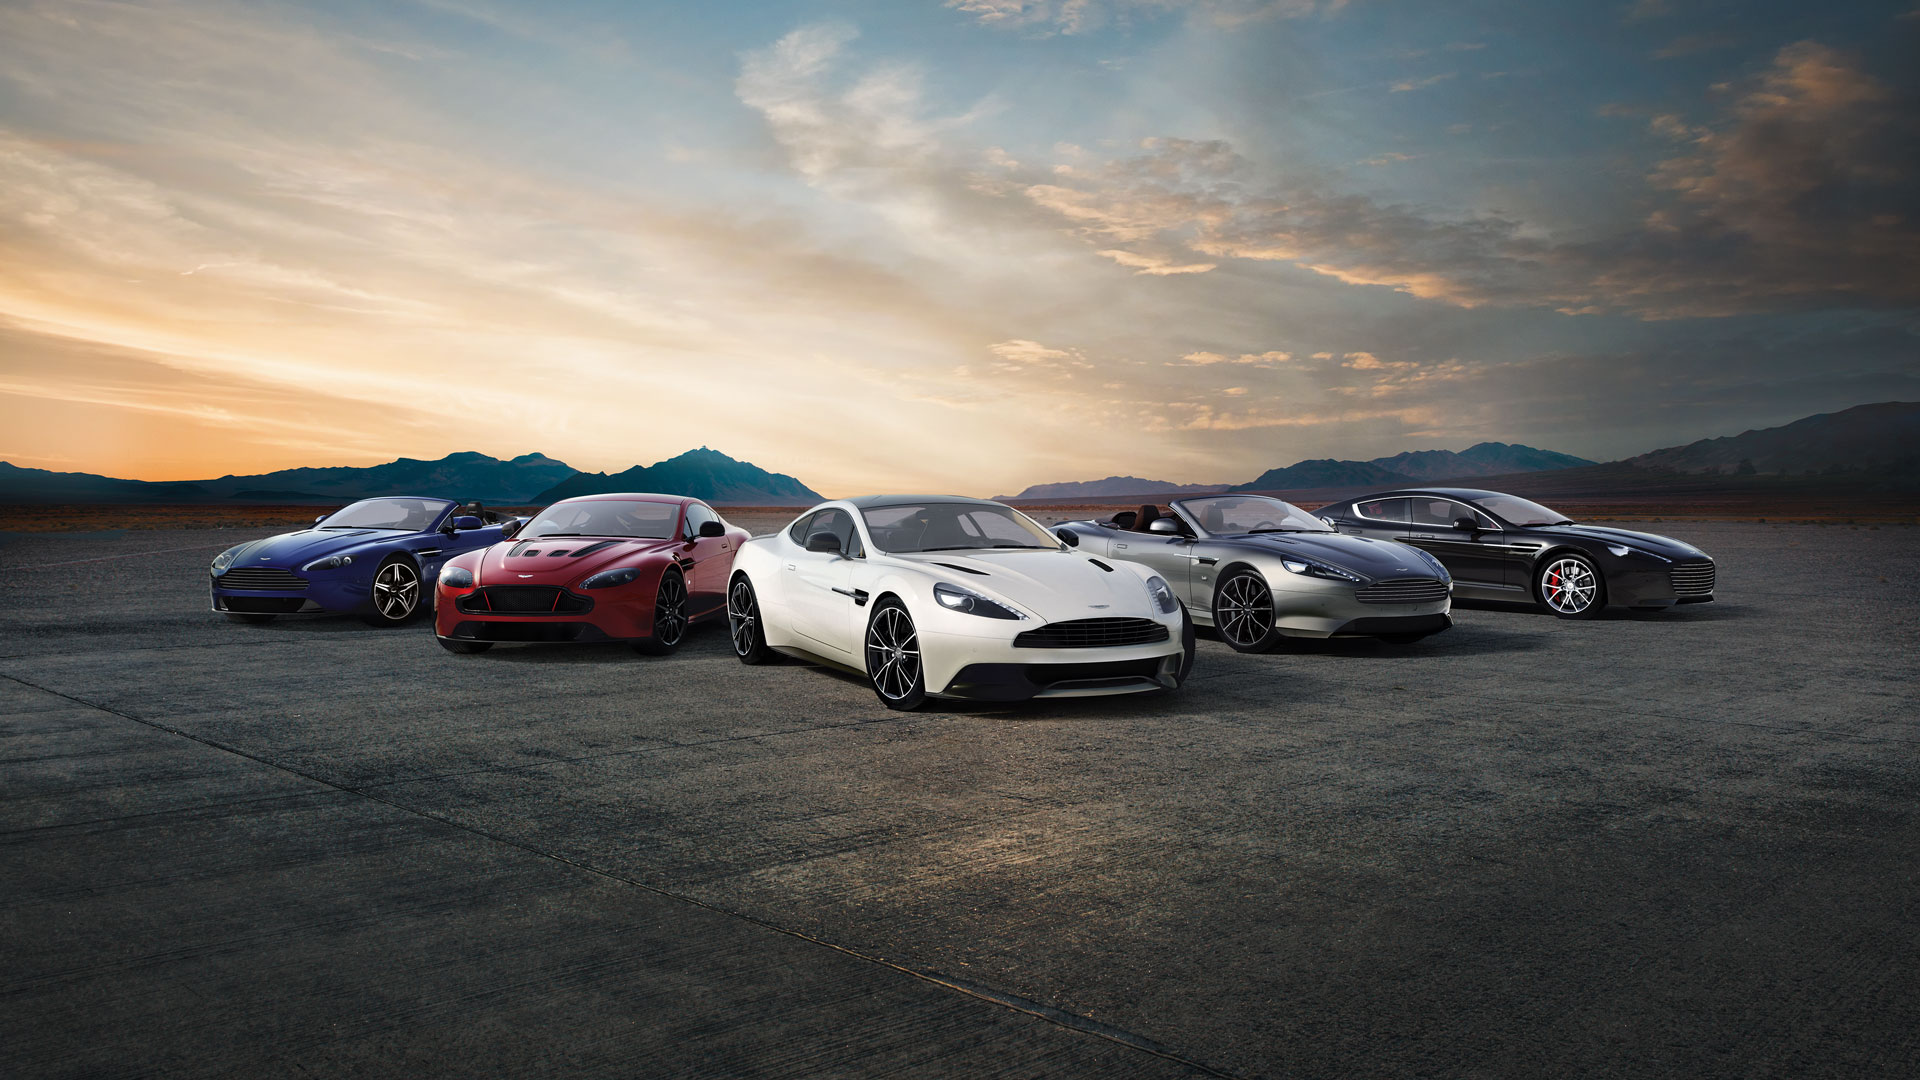 timeless - certified pre-owned and used| aston martin